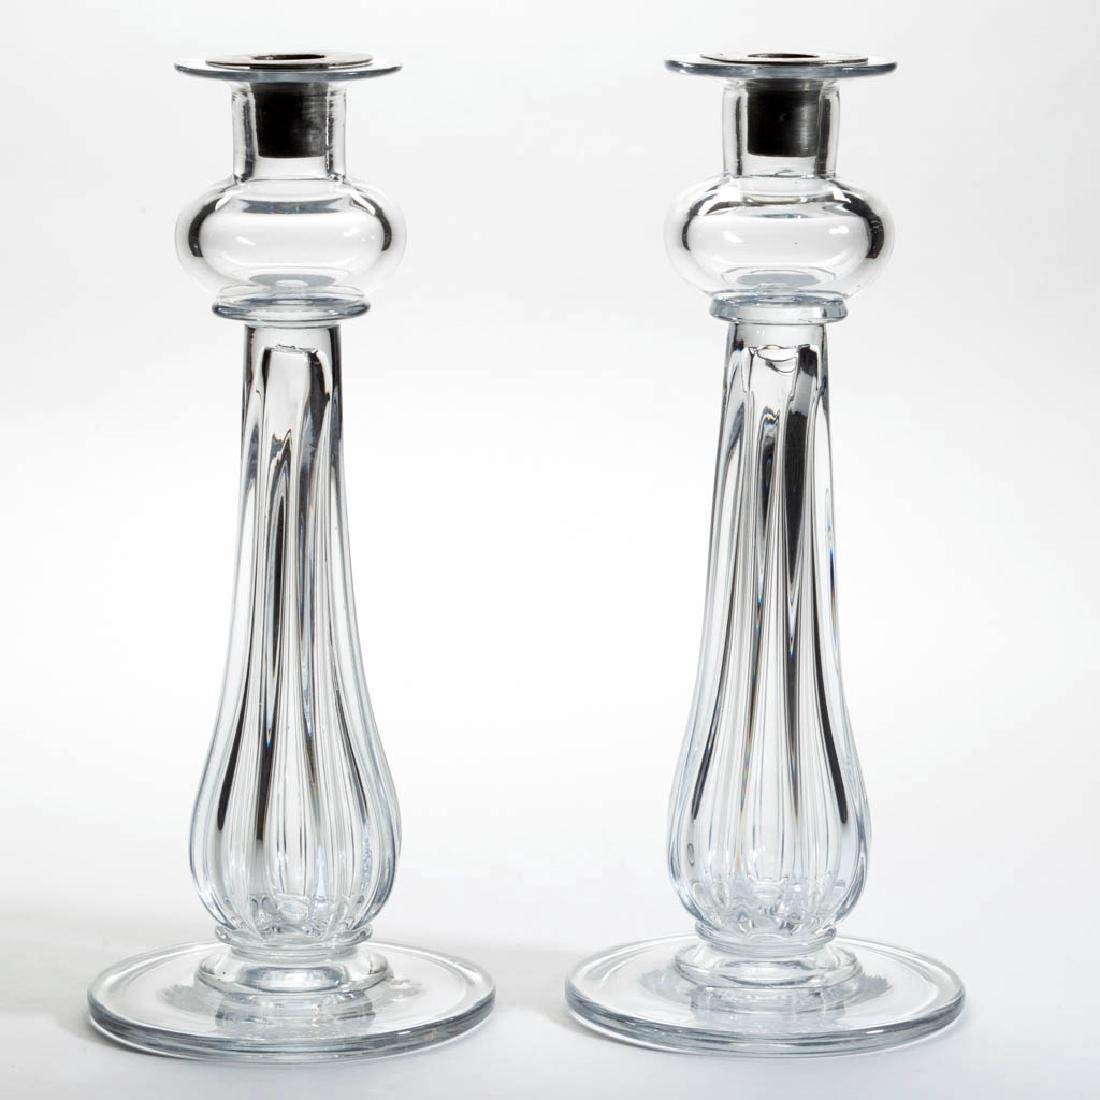 EXCEPTIONAL FREE-BLOWN AND PILLAR-MOLDED PAIR OF